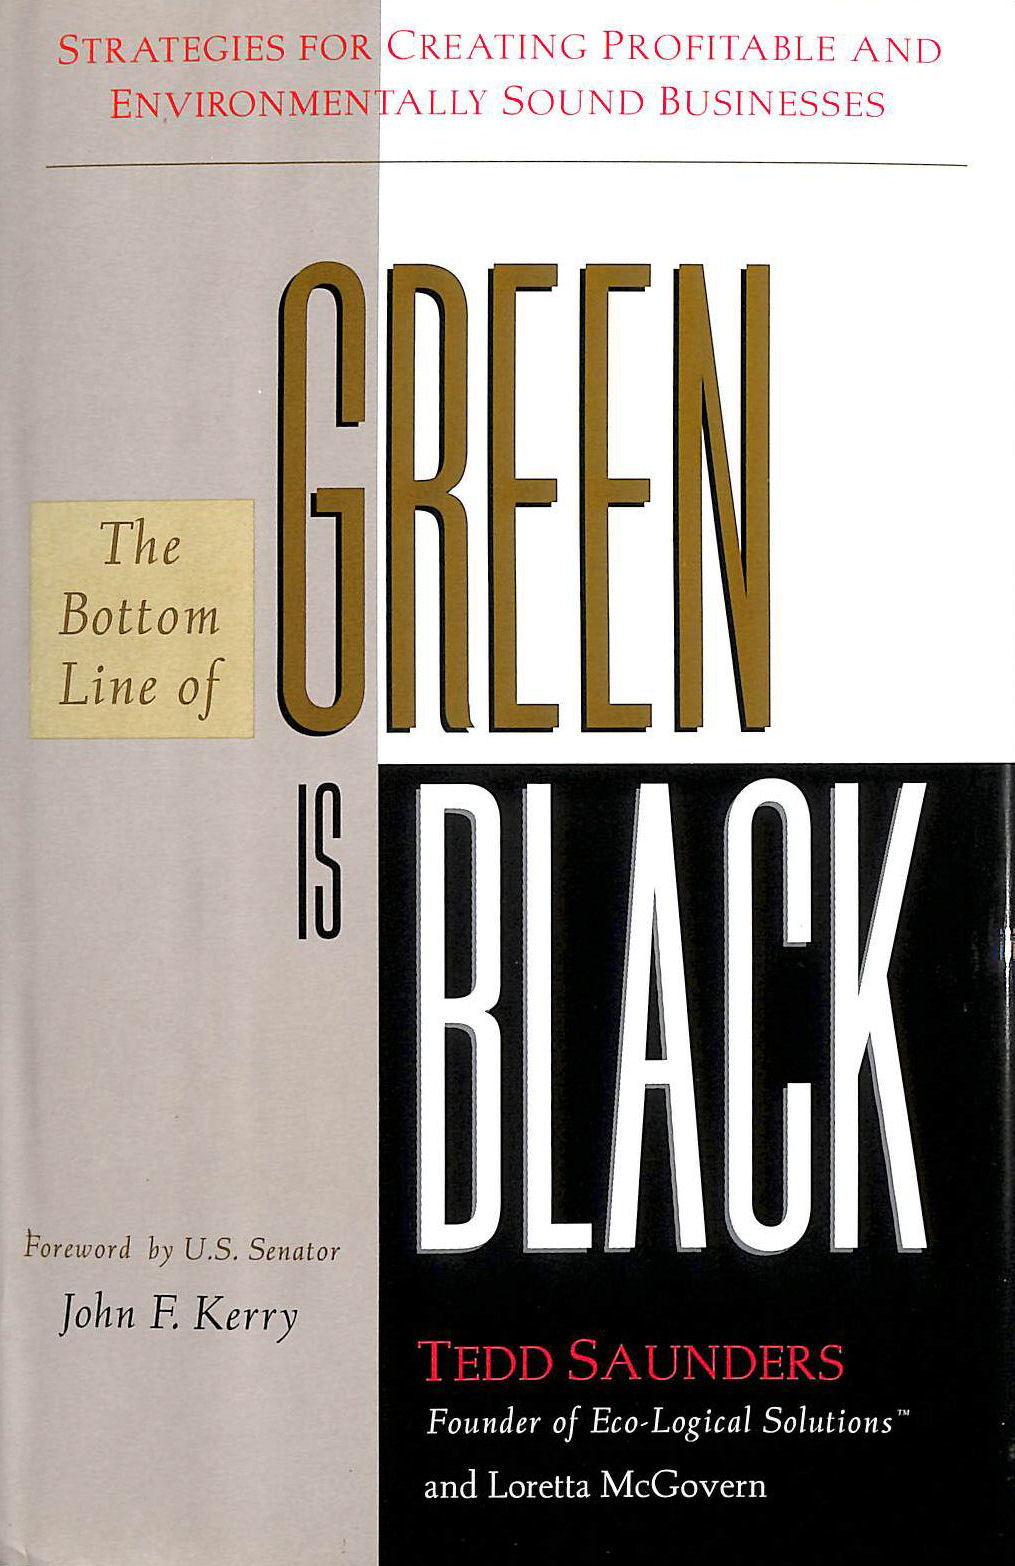 Image for The Bottom Line of Green is Black: Strategies for Creating Profitable and Environmentally Sound Businesses